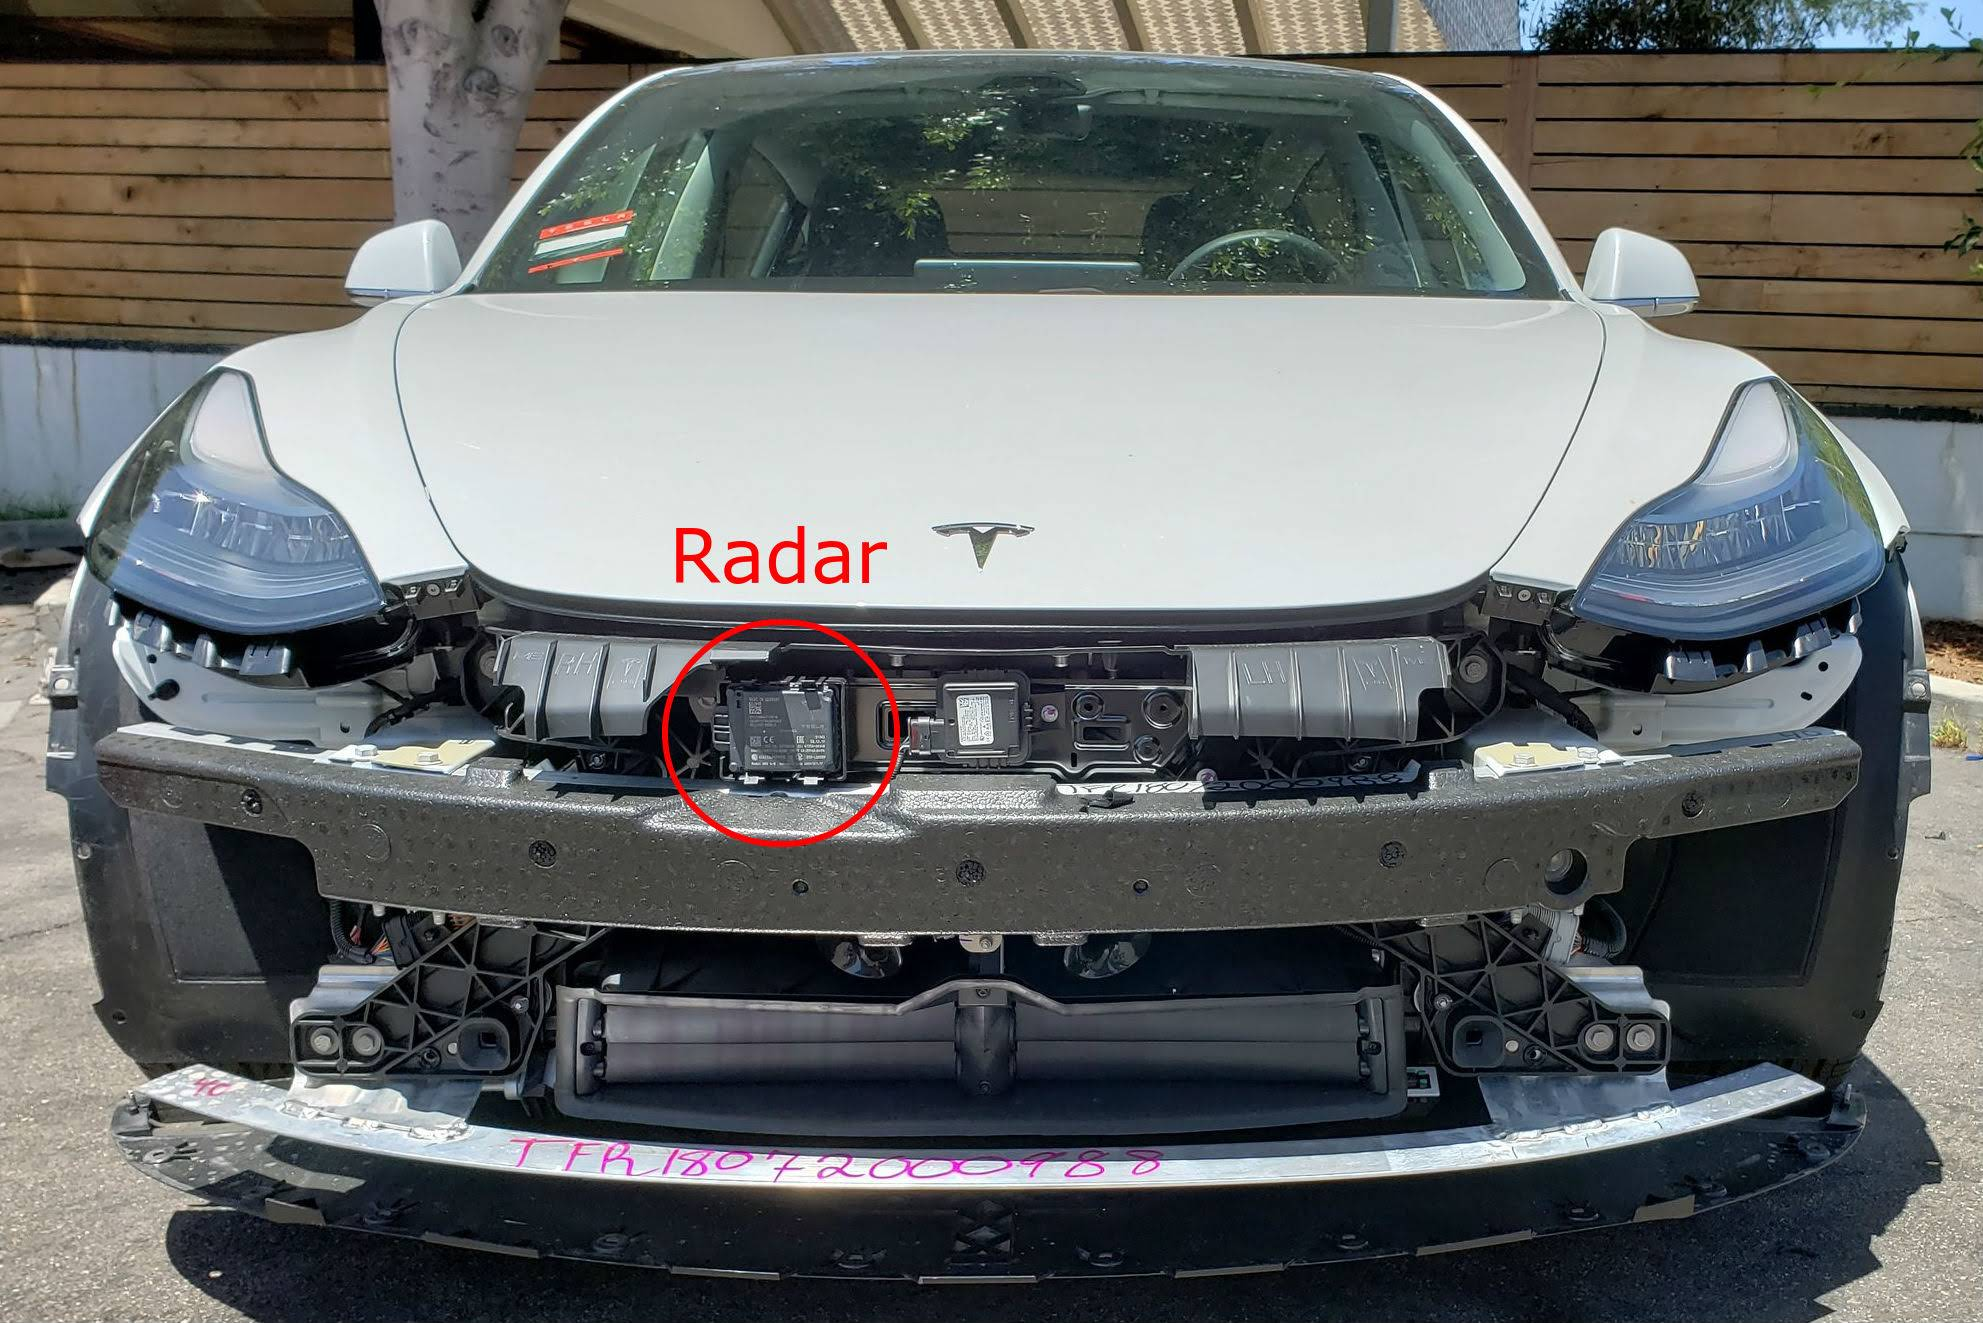 Front plate obstructing the radar - Tesla Owners Online